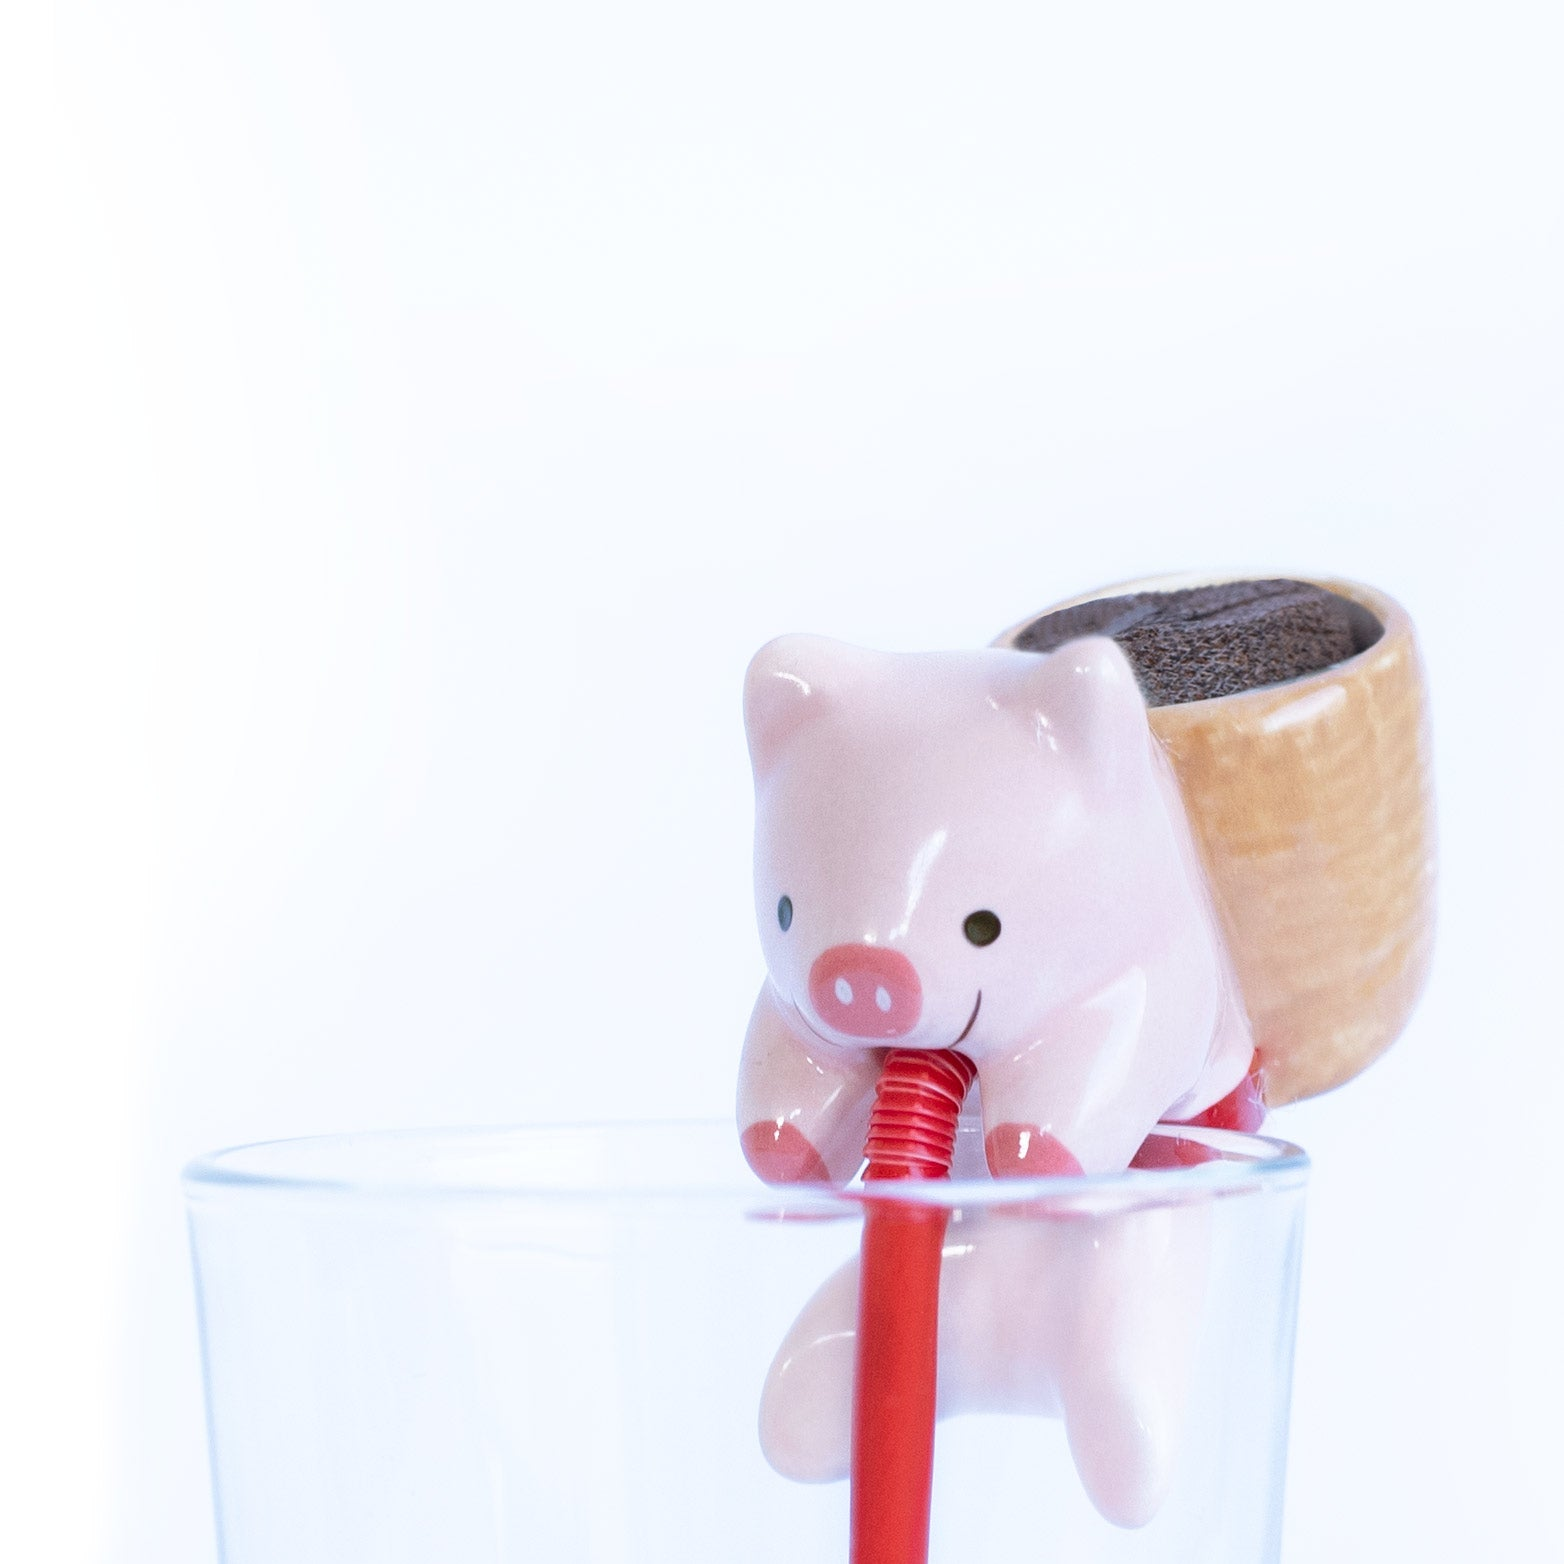 Chuppon Self Watering Piglet Clover Planter